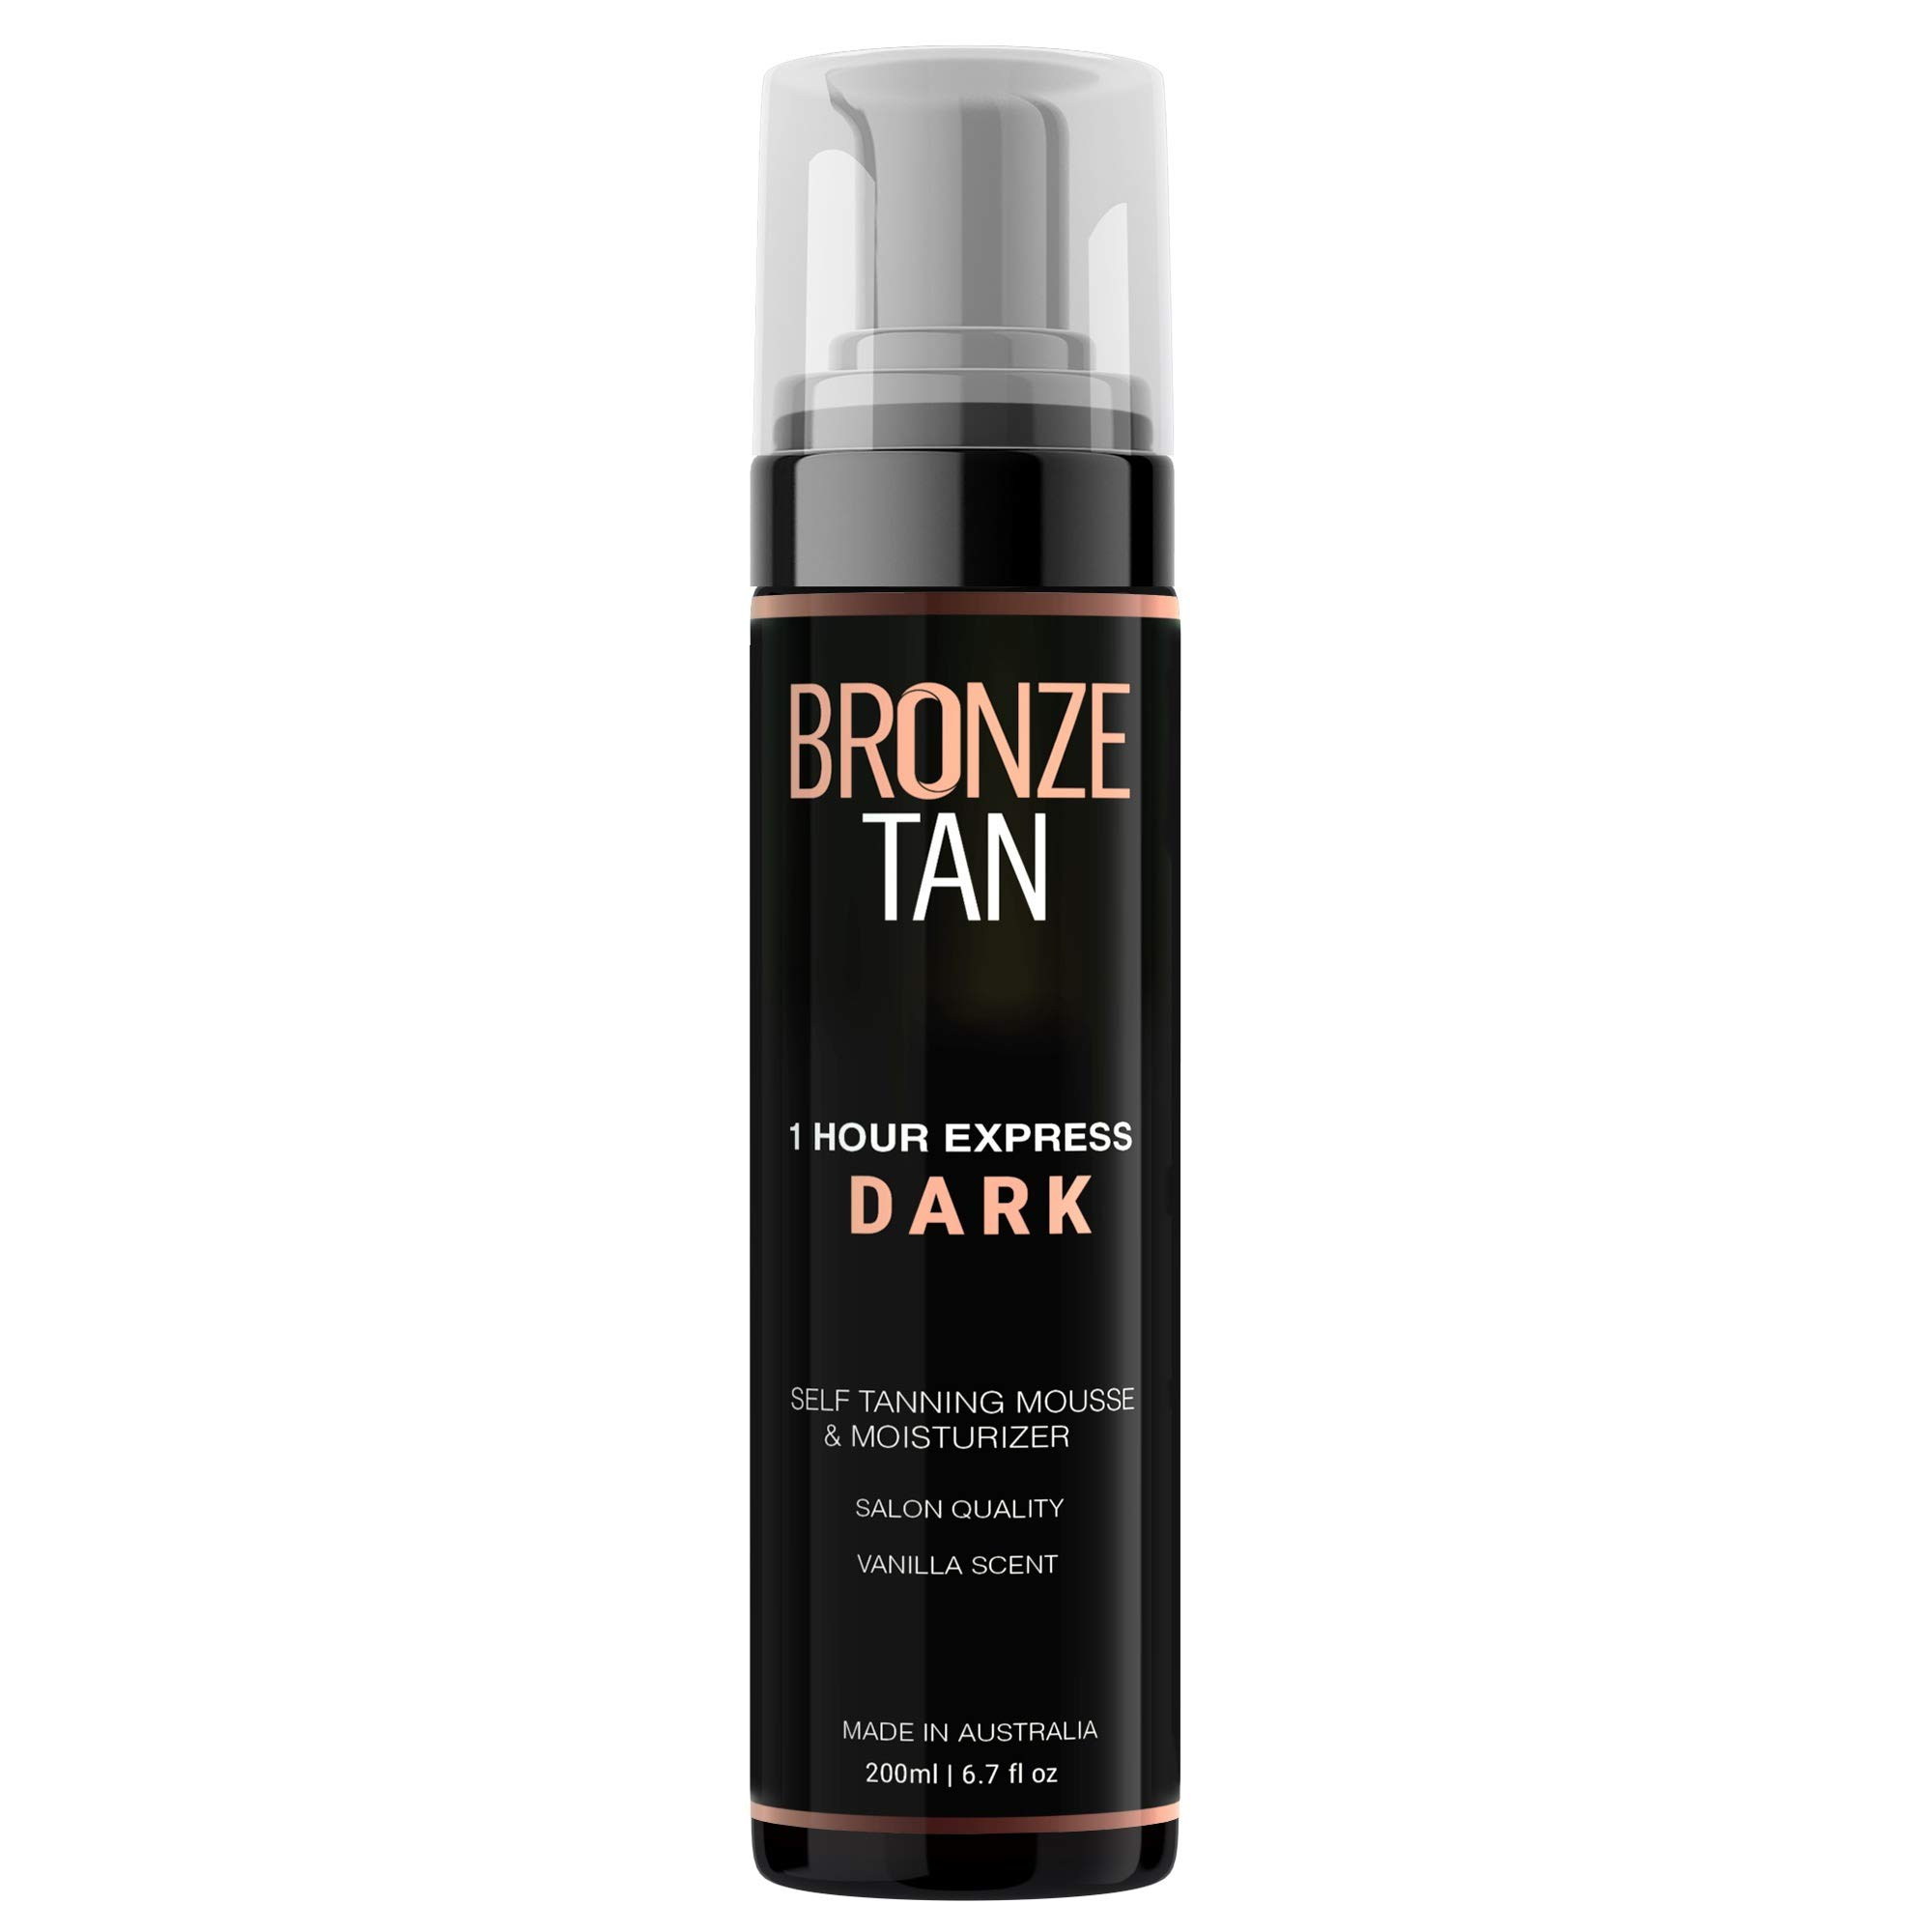 Bronze Tan Dark Moisturizing Self Tanning Mousse and Self Tanner For Fair to Medium Skin Tones Salon Quality Vanilla Scented (200 ml/ 6.7 oz) by Existing Beauty